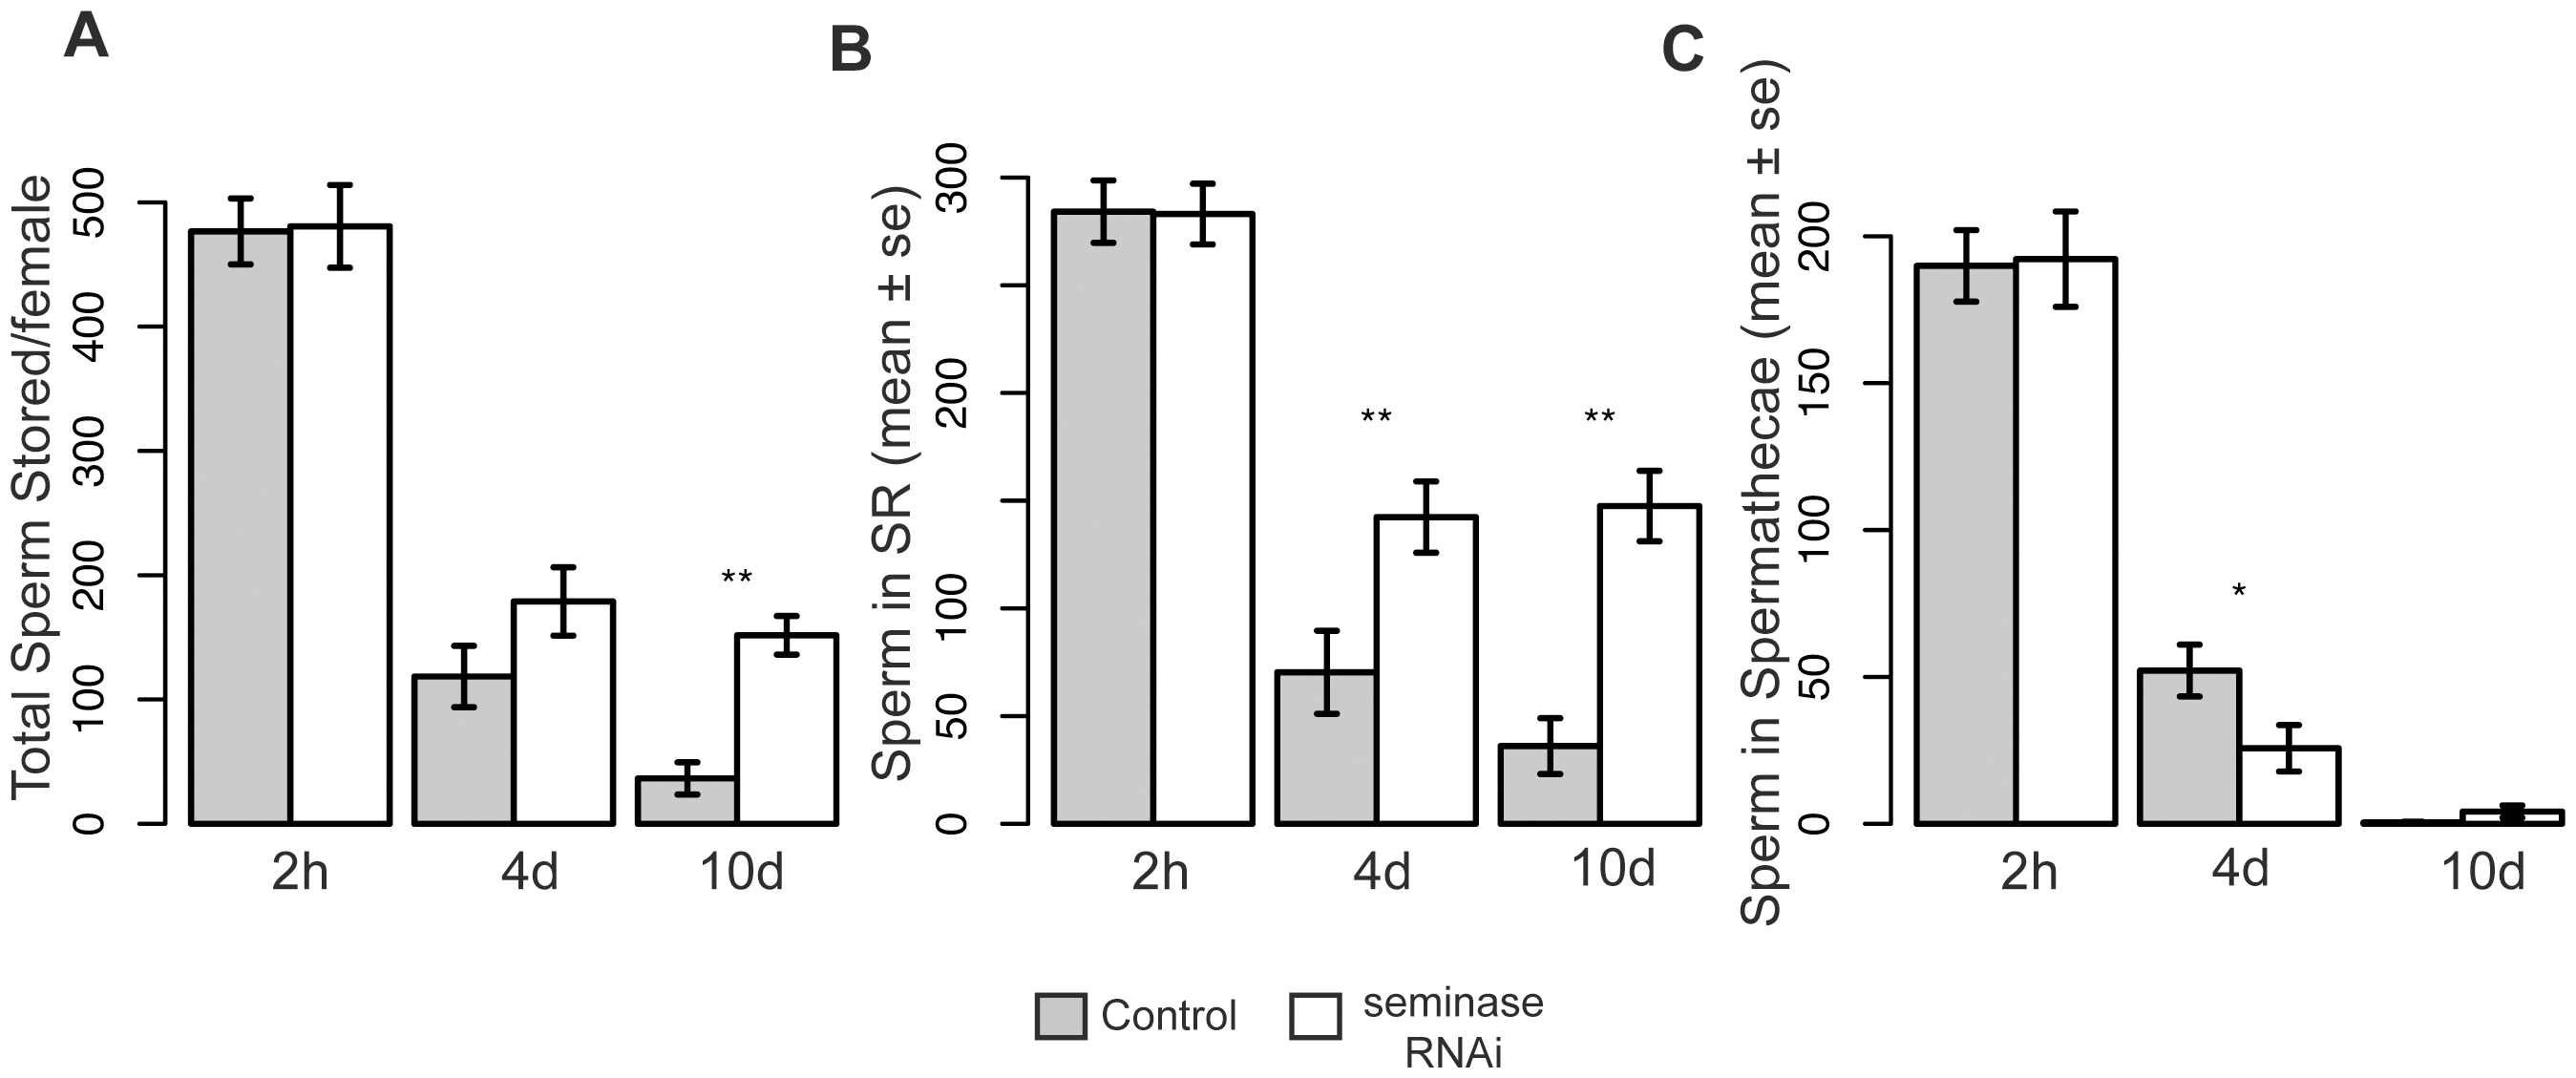 Females mated to seminase knockdown males retain more sperm 4 and 10 days after mating.